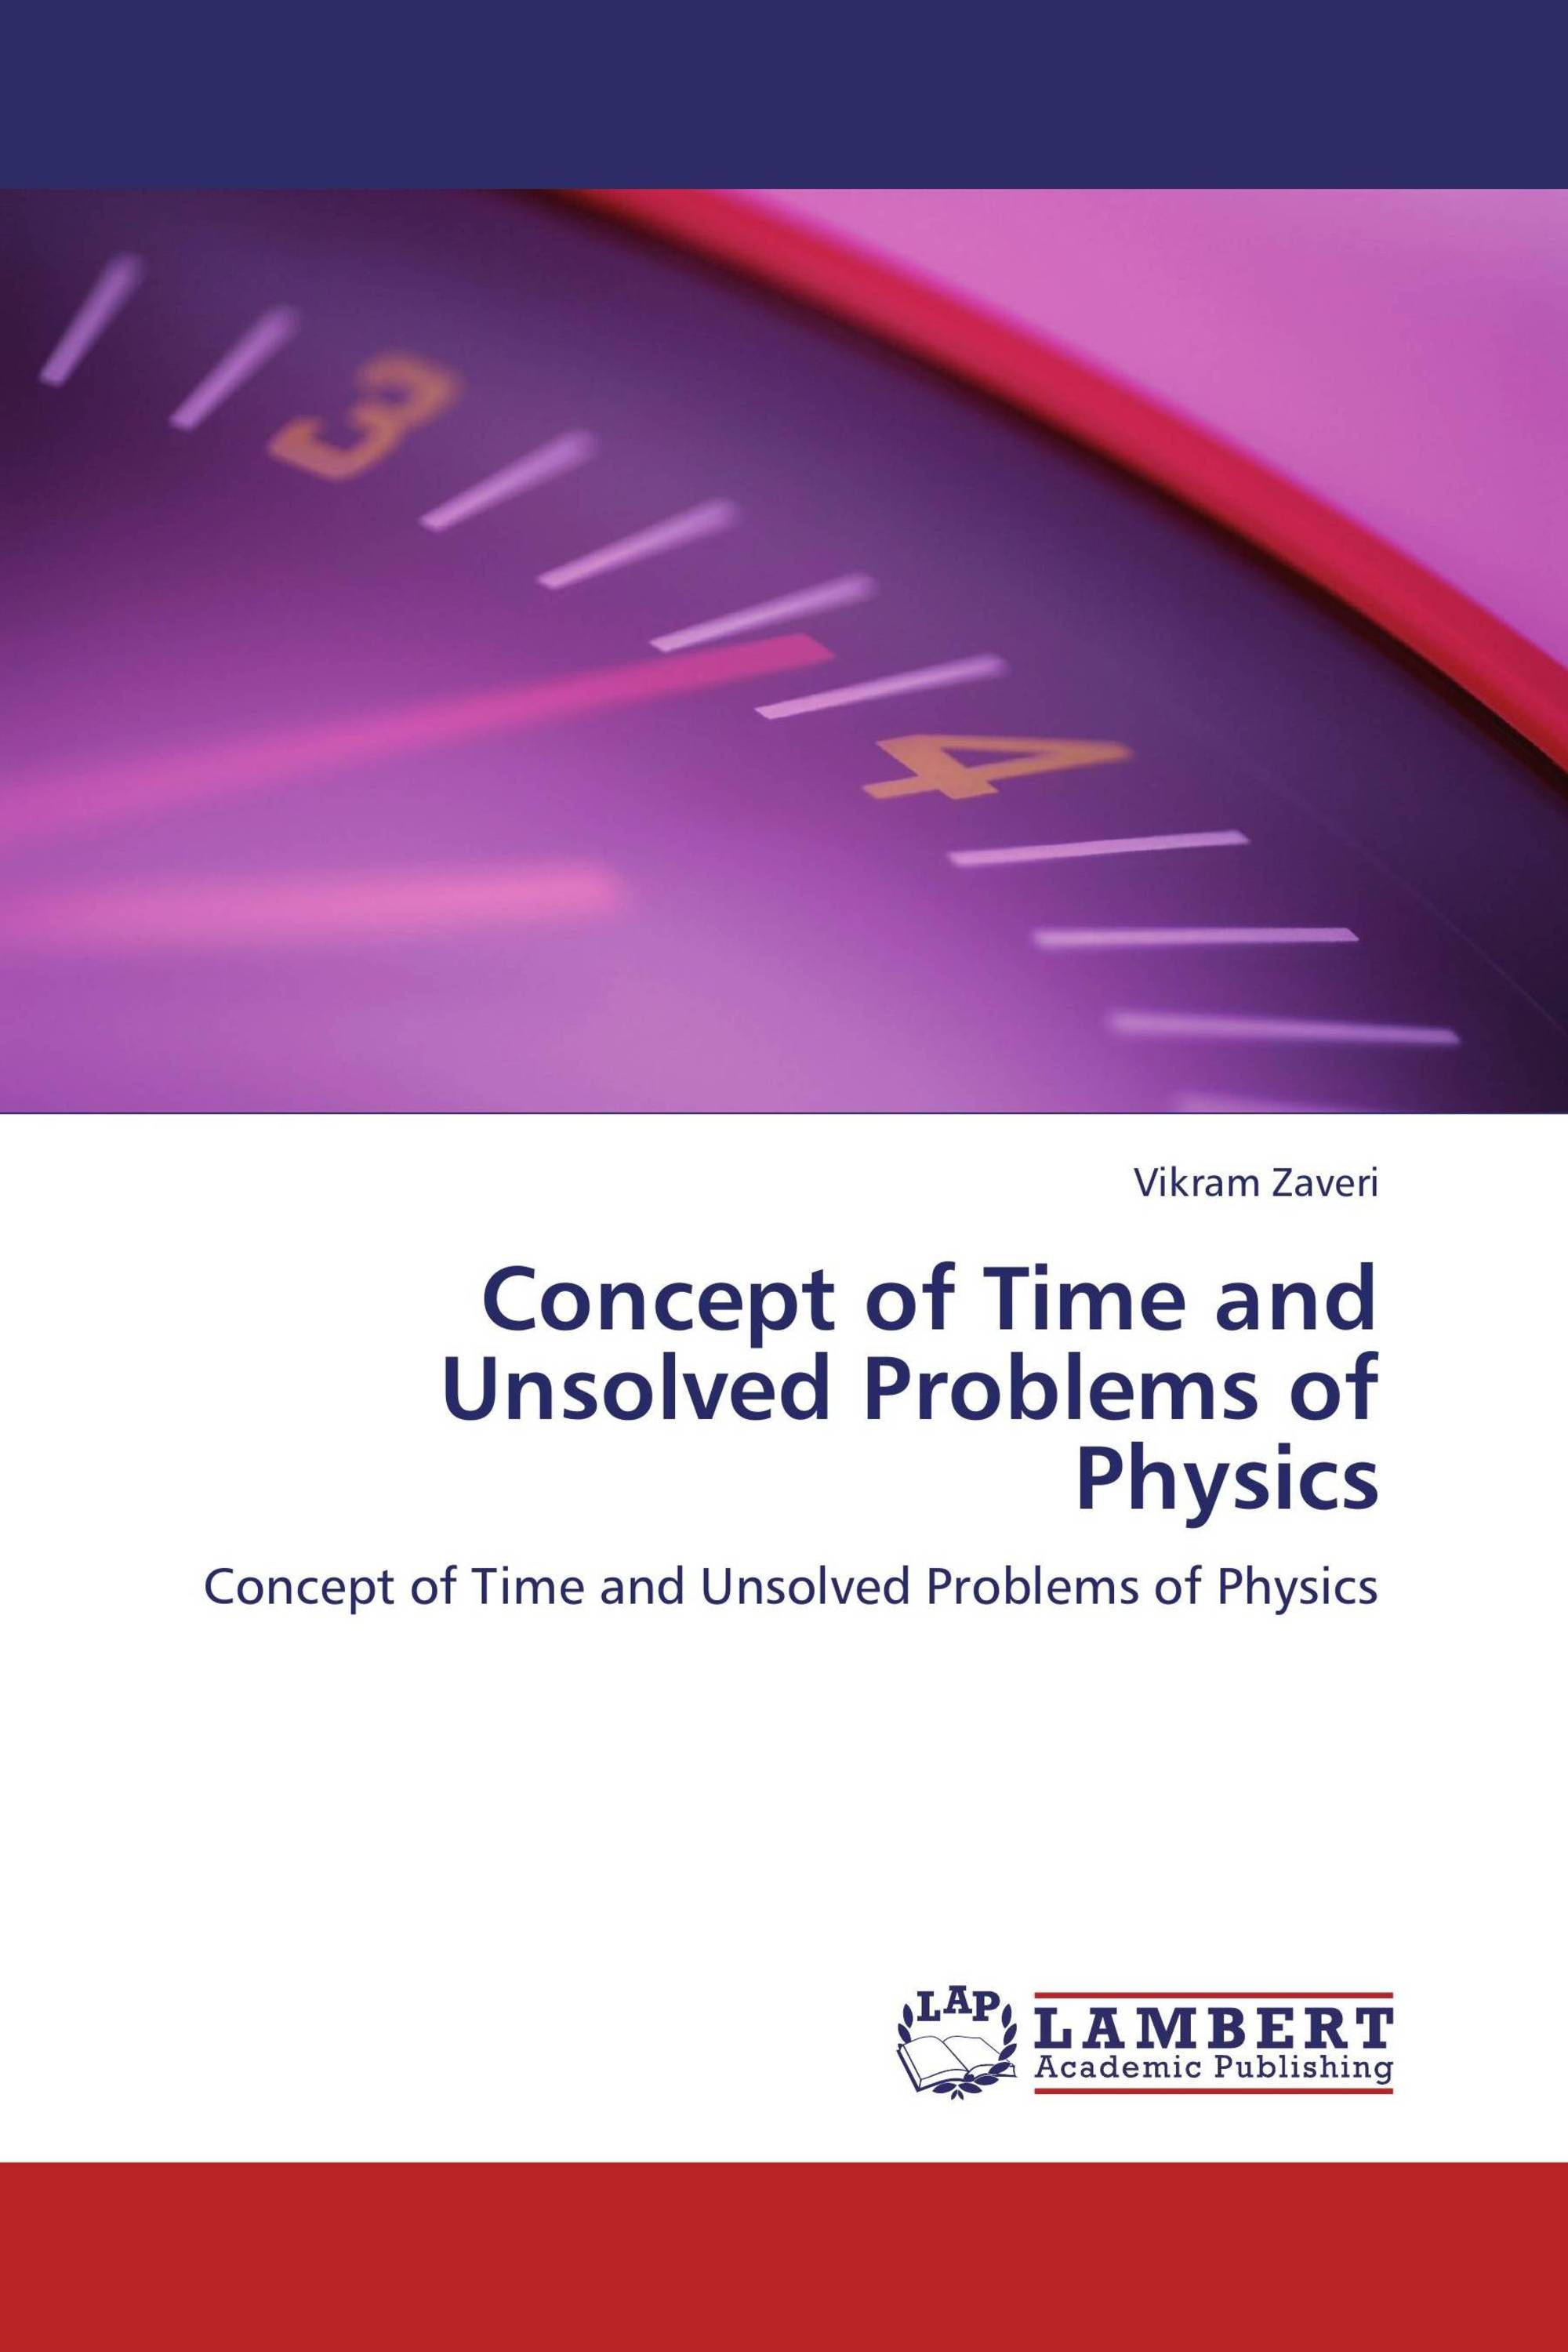 Concept of Time and Unsolved Problems of Physics